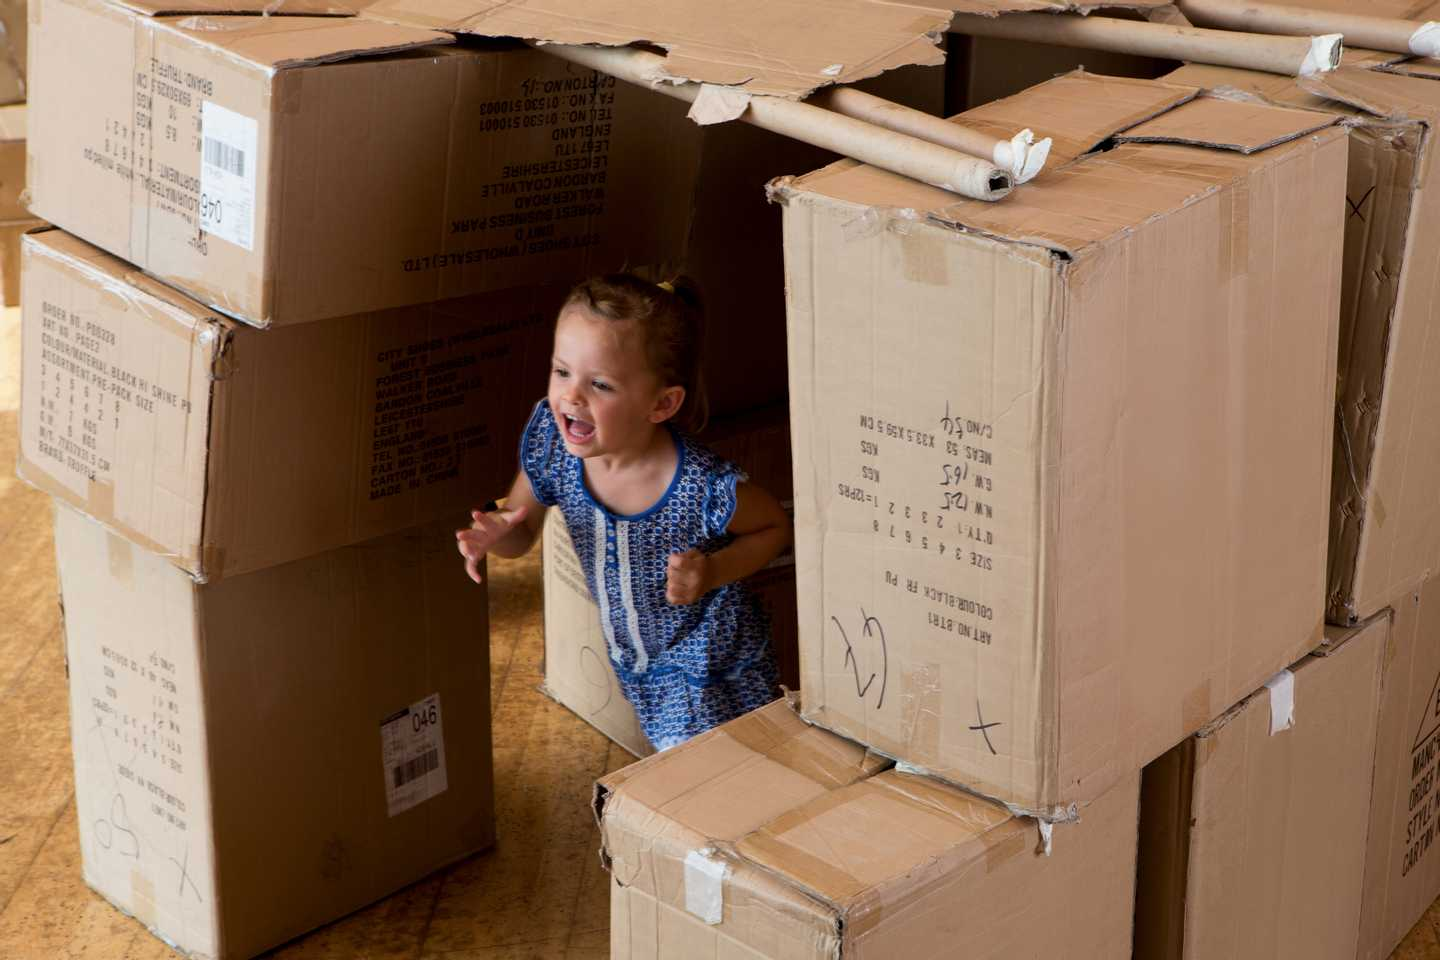 Child peeking out of cardboard box